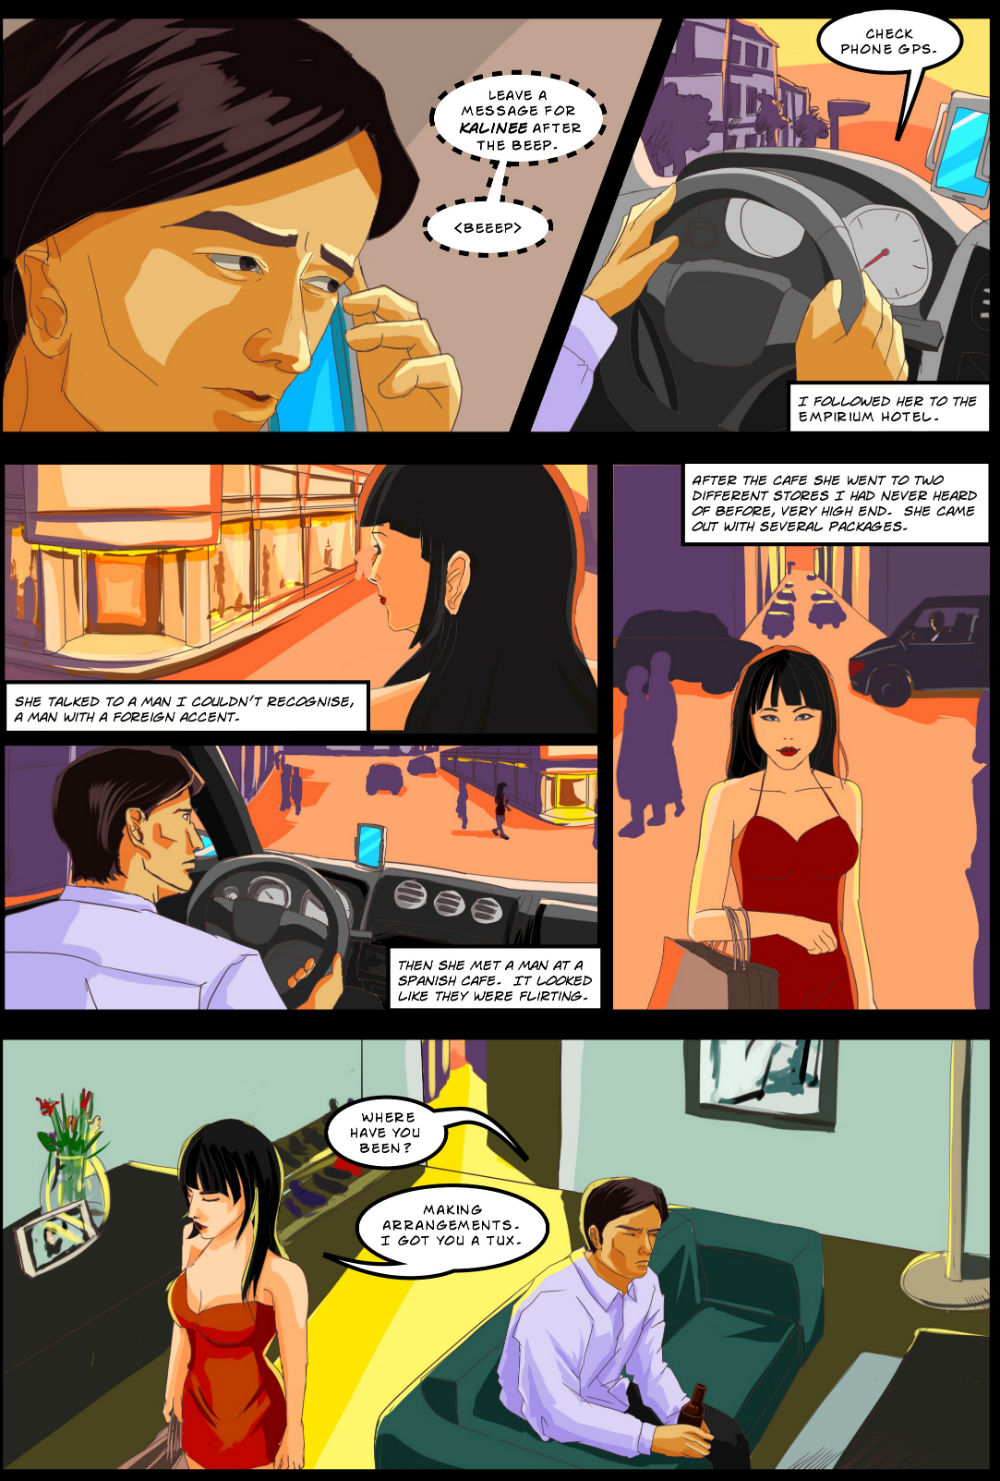 BEING OTHER PEOPLE page 4 -- story 26 in The Book of Lies